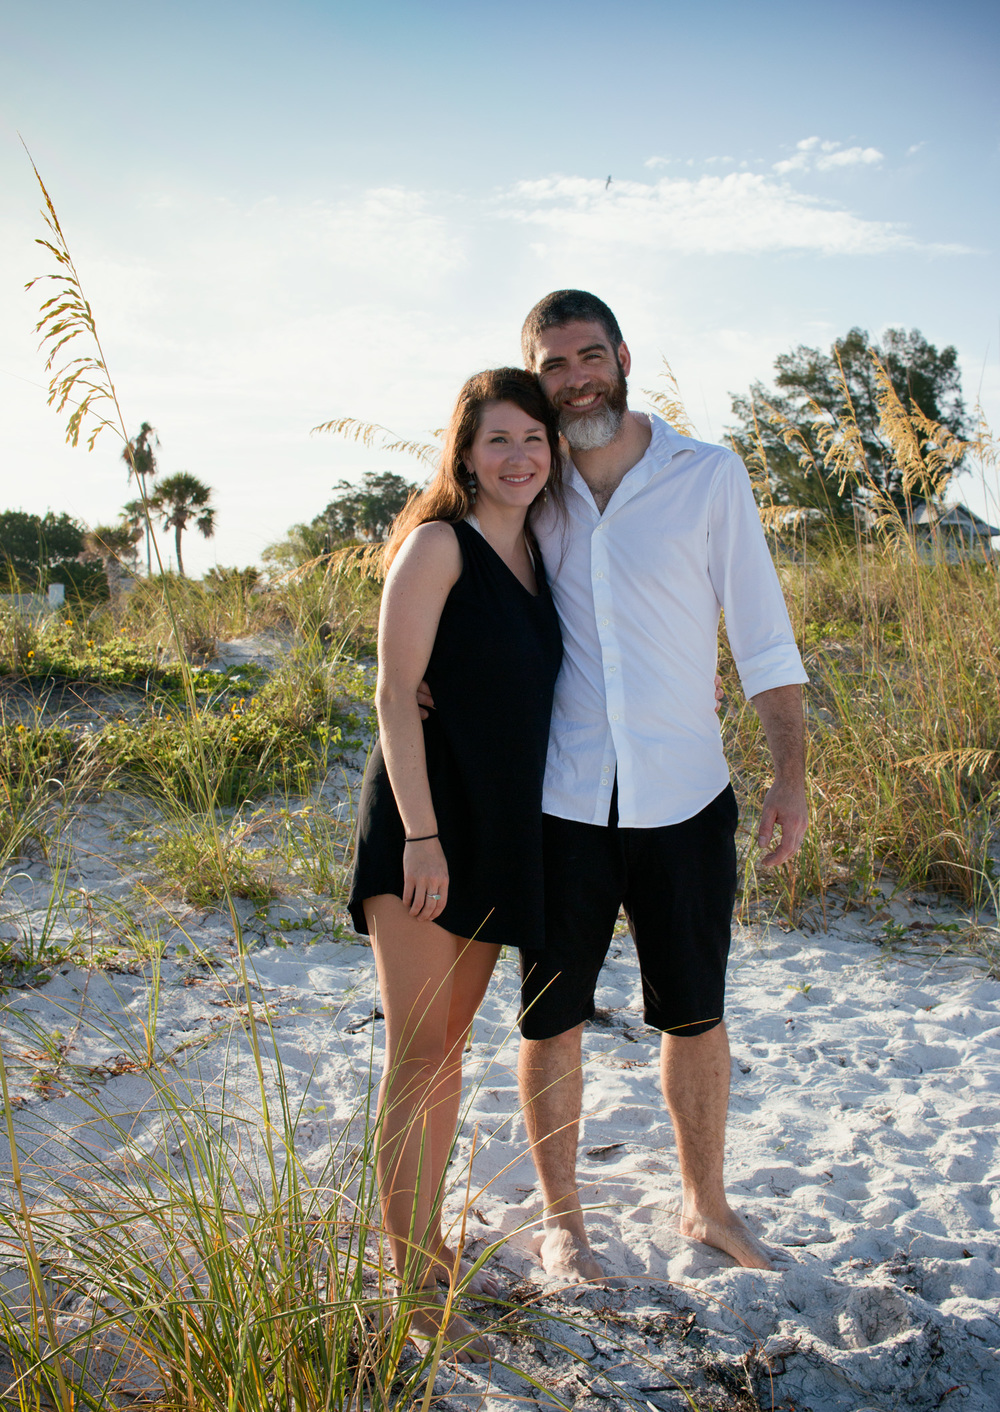 A cute couple pose amongst the white sand and grass at Pass-a-Grille Beach.